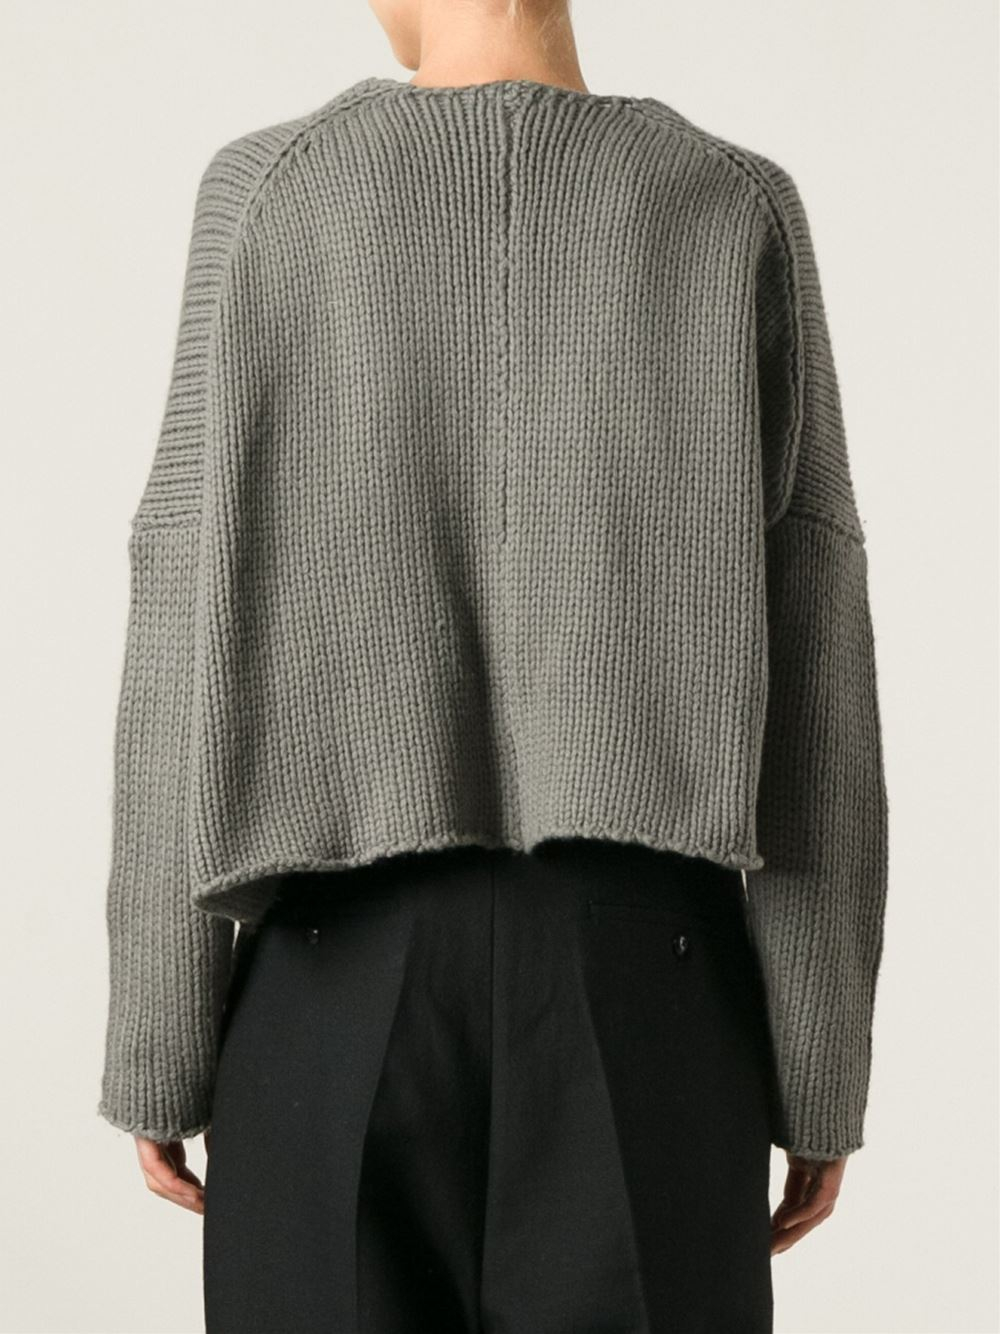 Rundholz Boxy Cropped Sweater in Green | Lyst